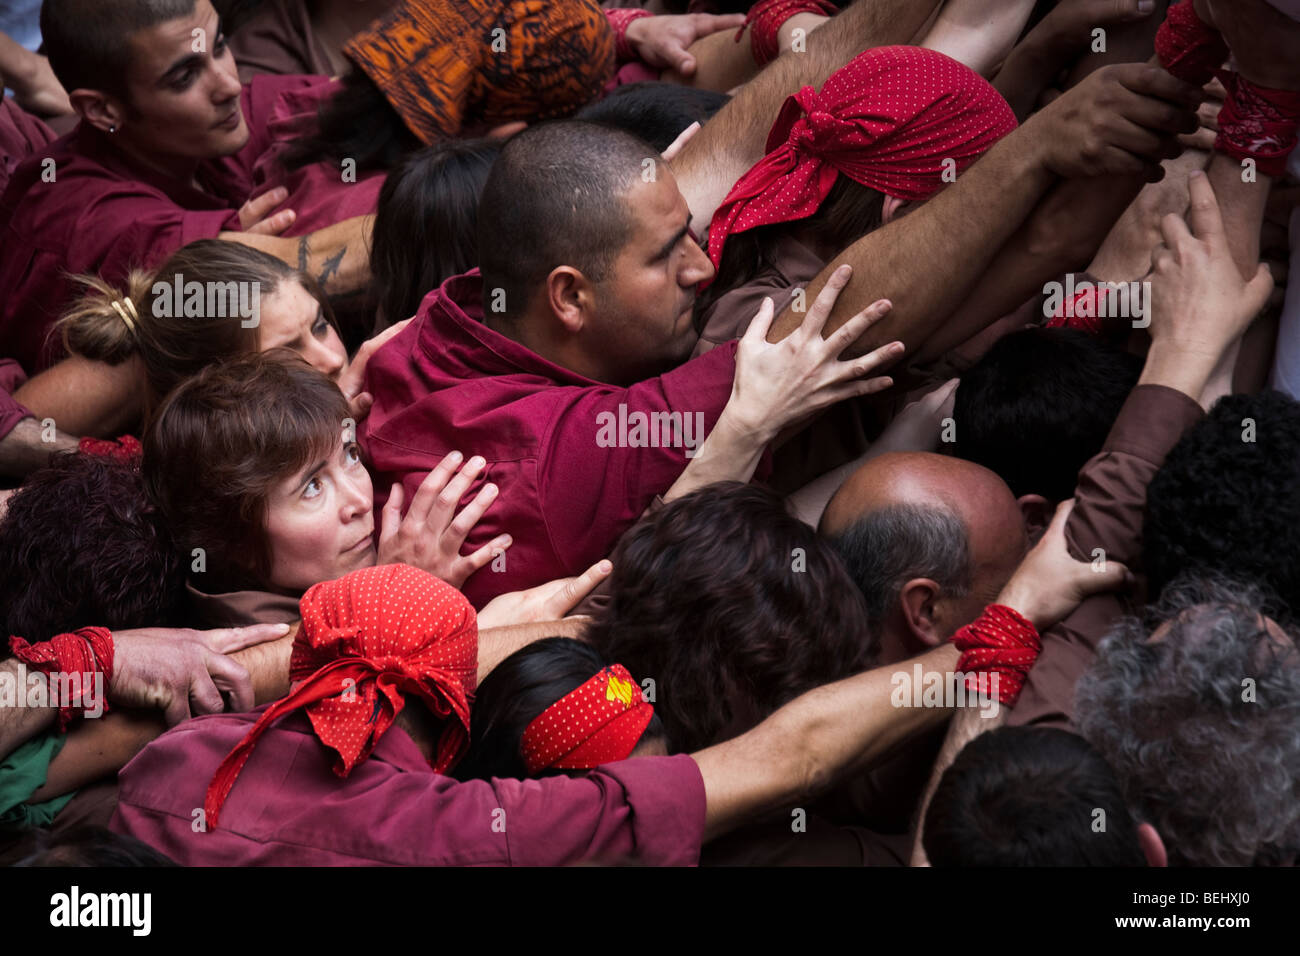 Castellers forming a human pyramid during festival in Bellver Castle Palma Mallorca Spain - Stock Image